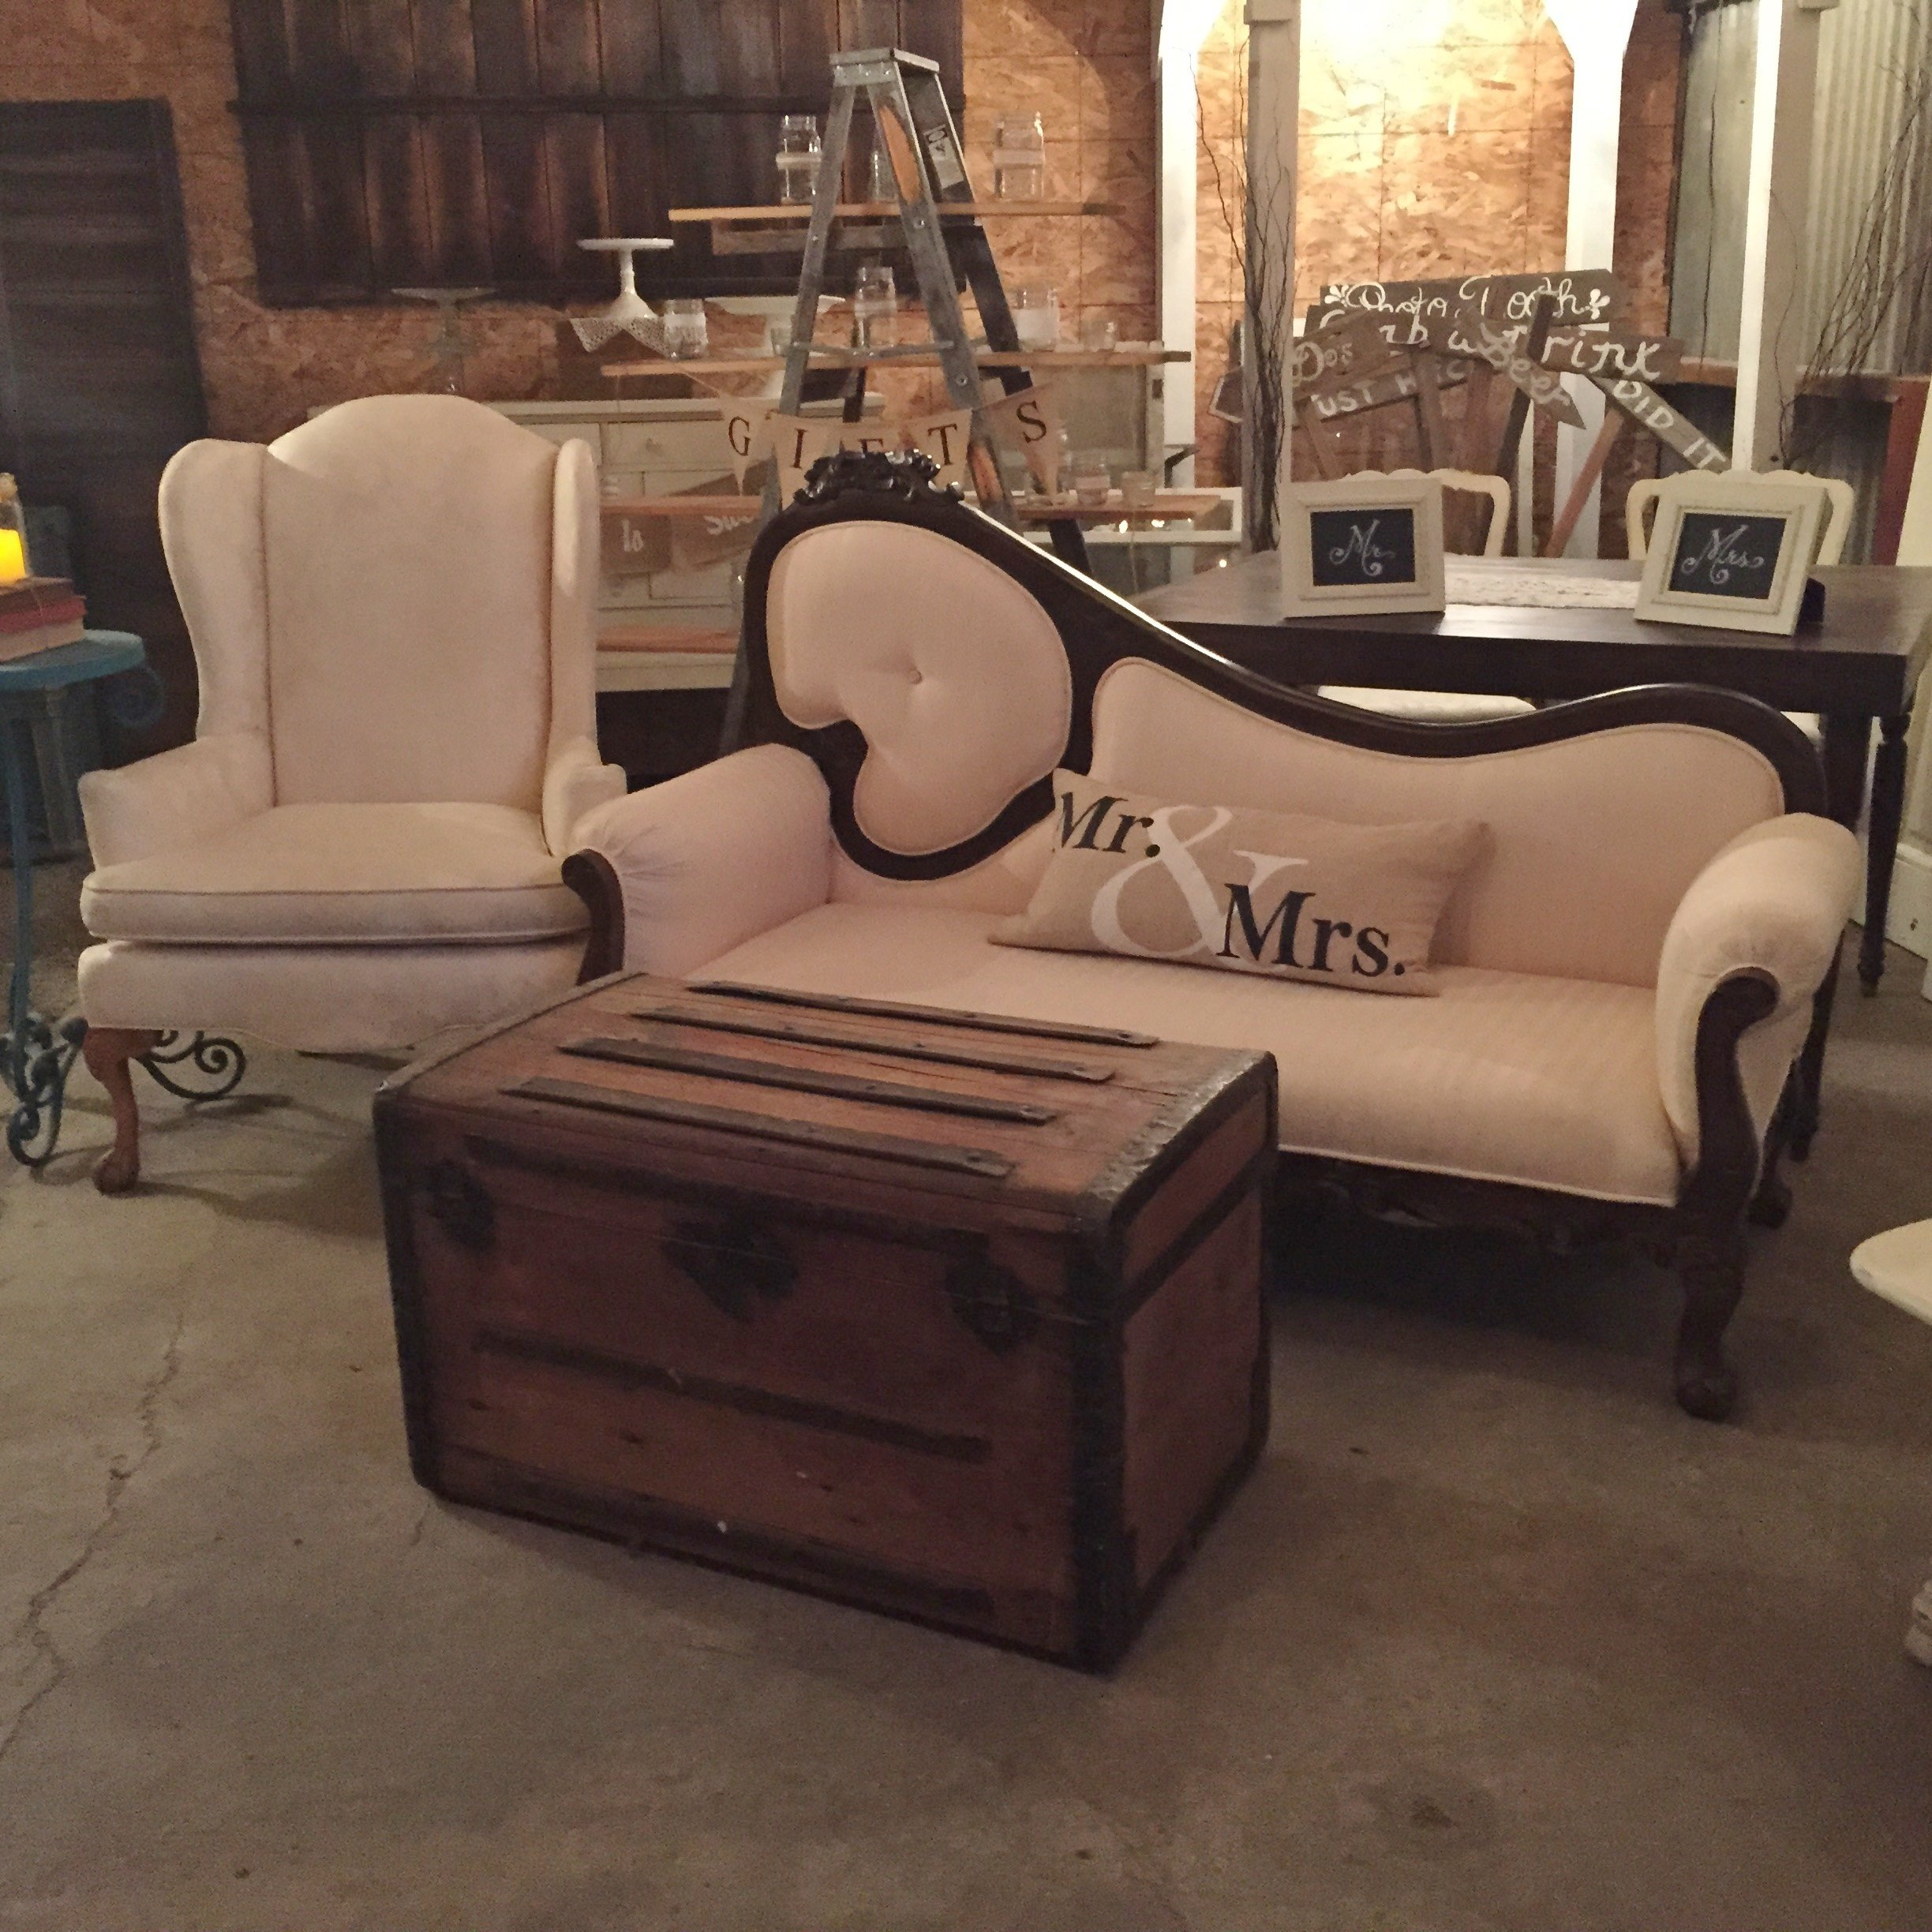 Vintage Furniture Rentals